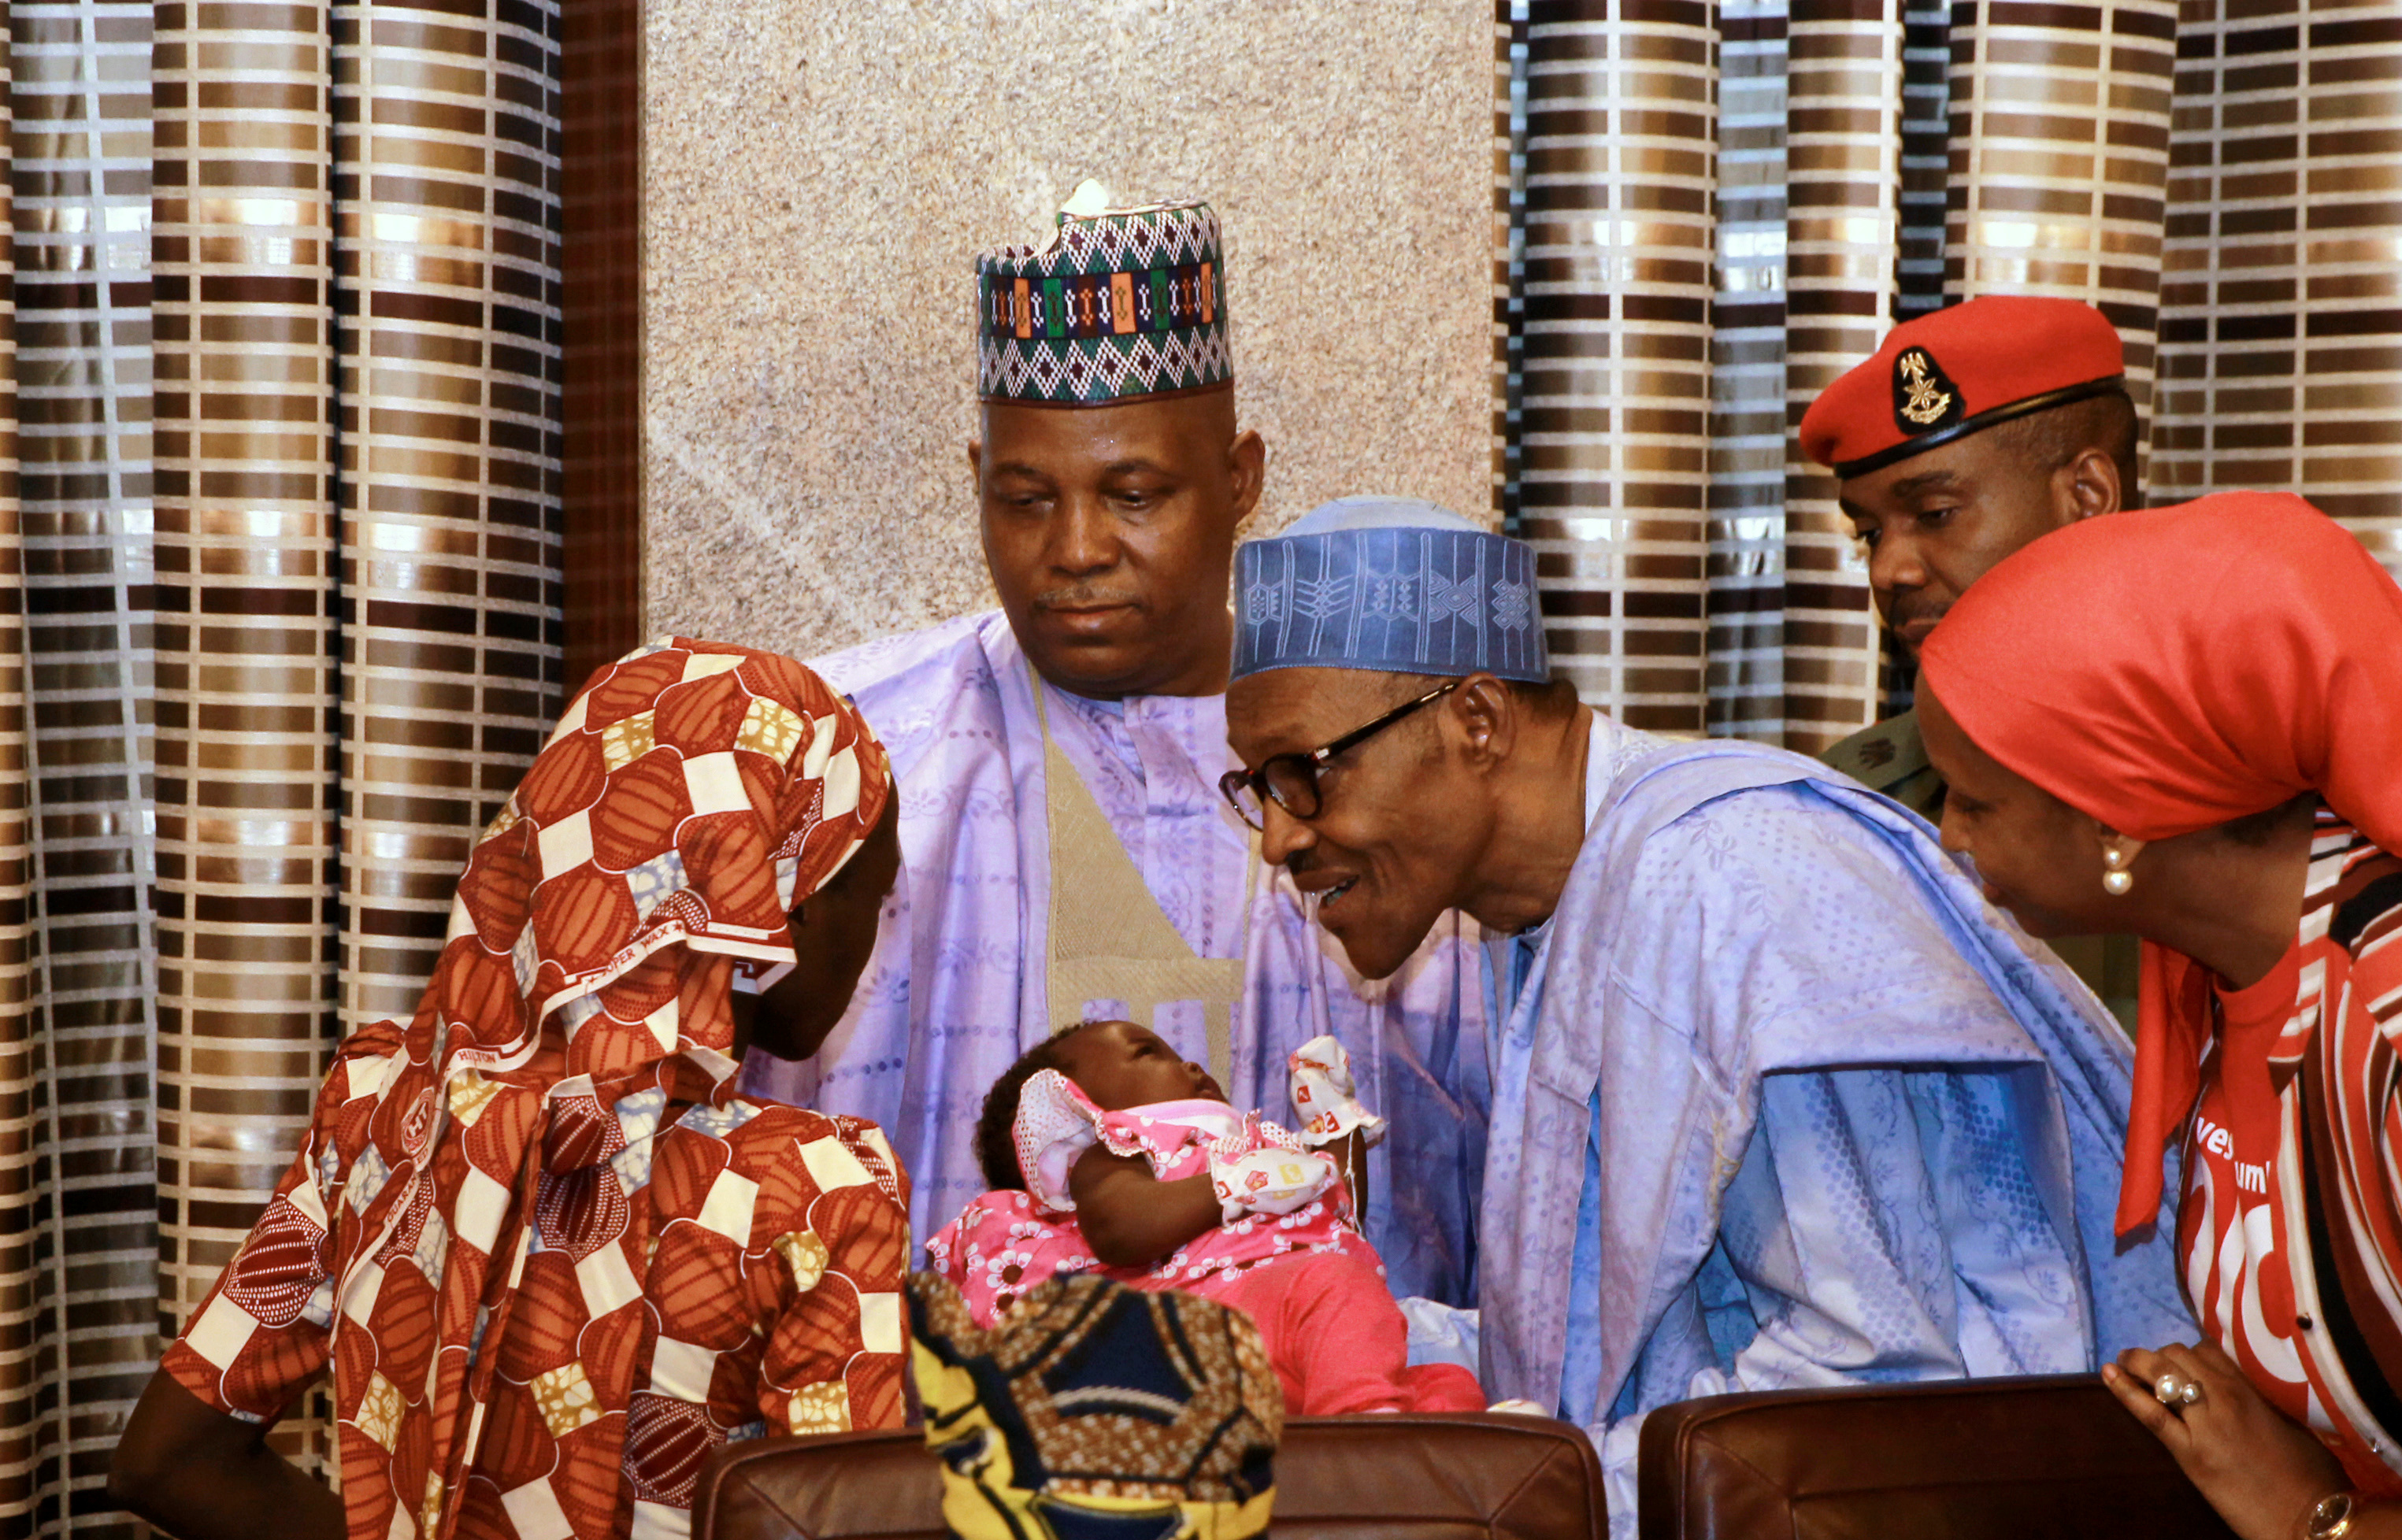 Amina Ali Darsha Nkeki, a Nigerian schoolgirl rescued after over two years of captivity with Boko Haram militants, presents her child to President Muhammadu Buhari in Abuja, Nigeria May 19, 2016.